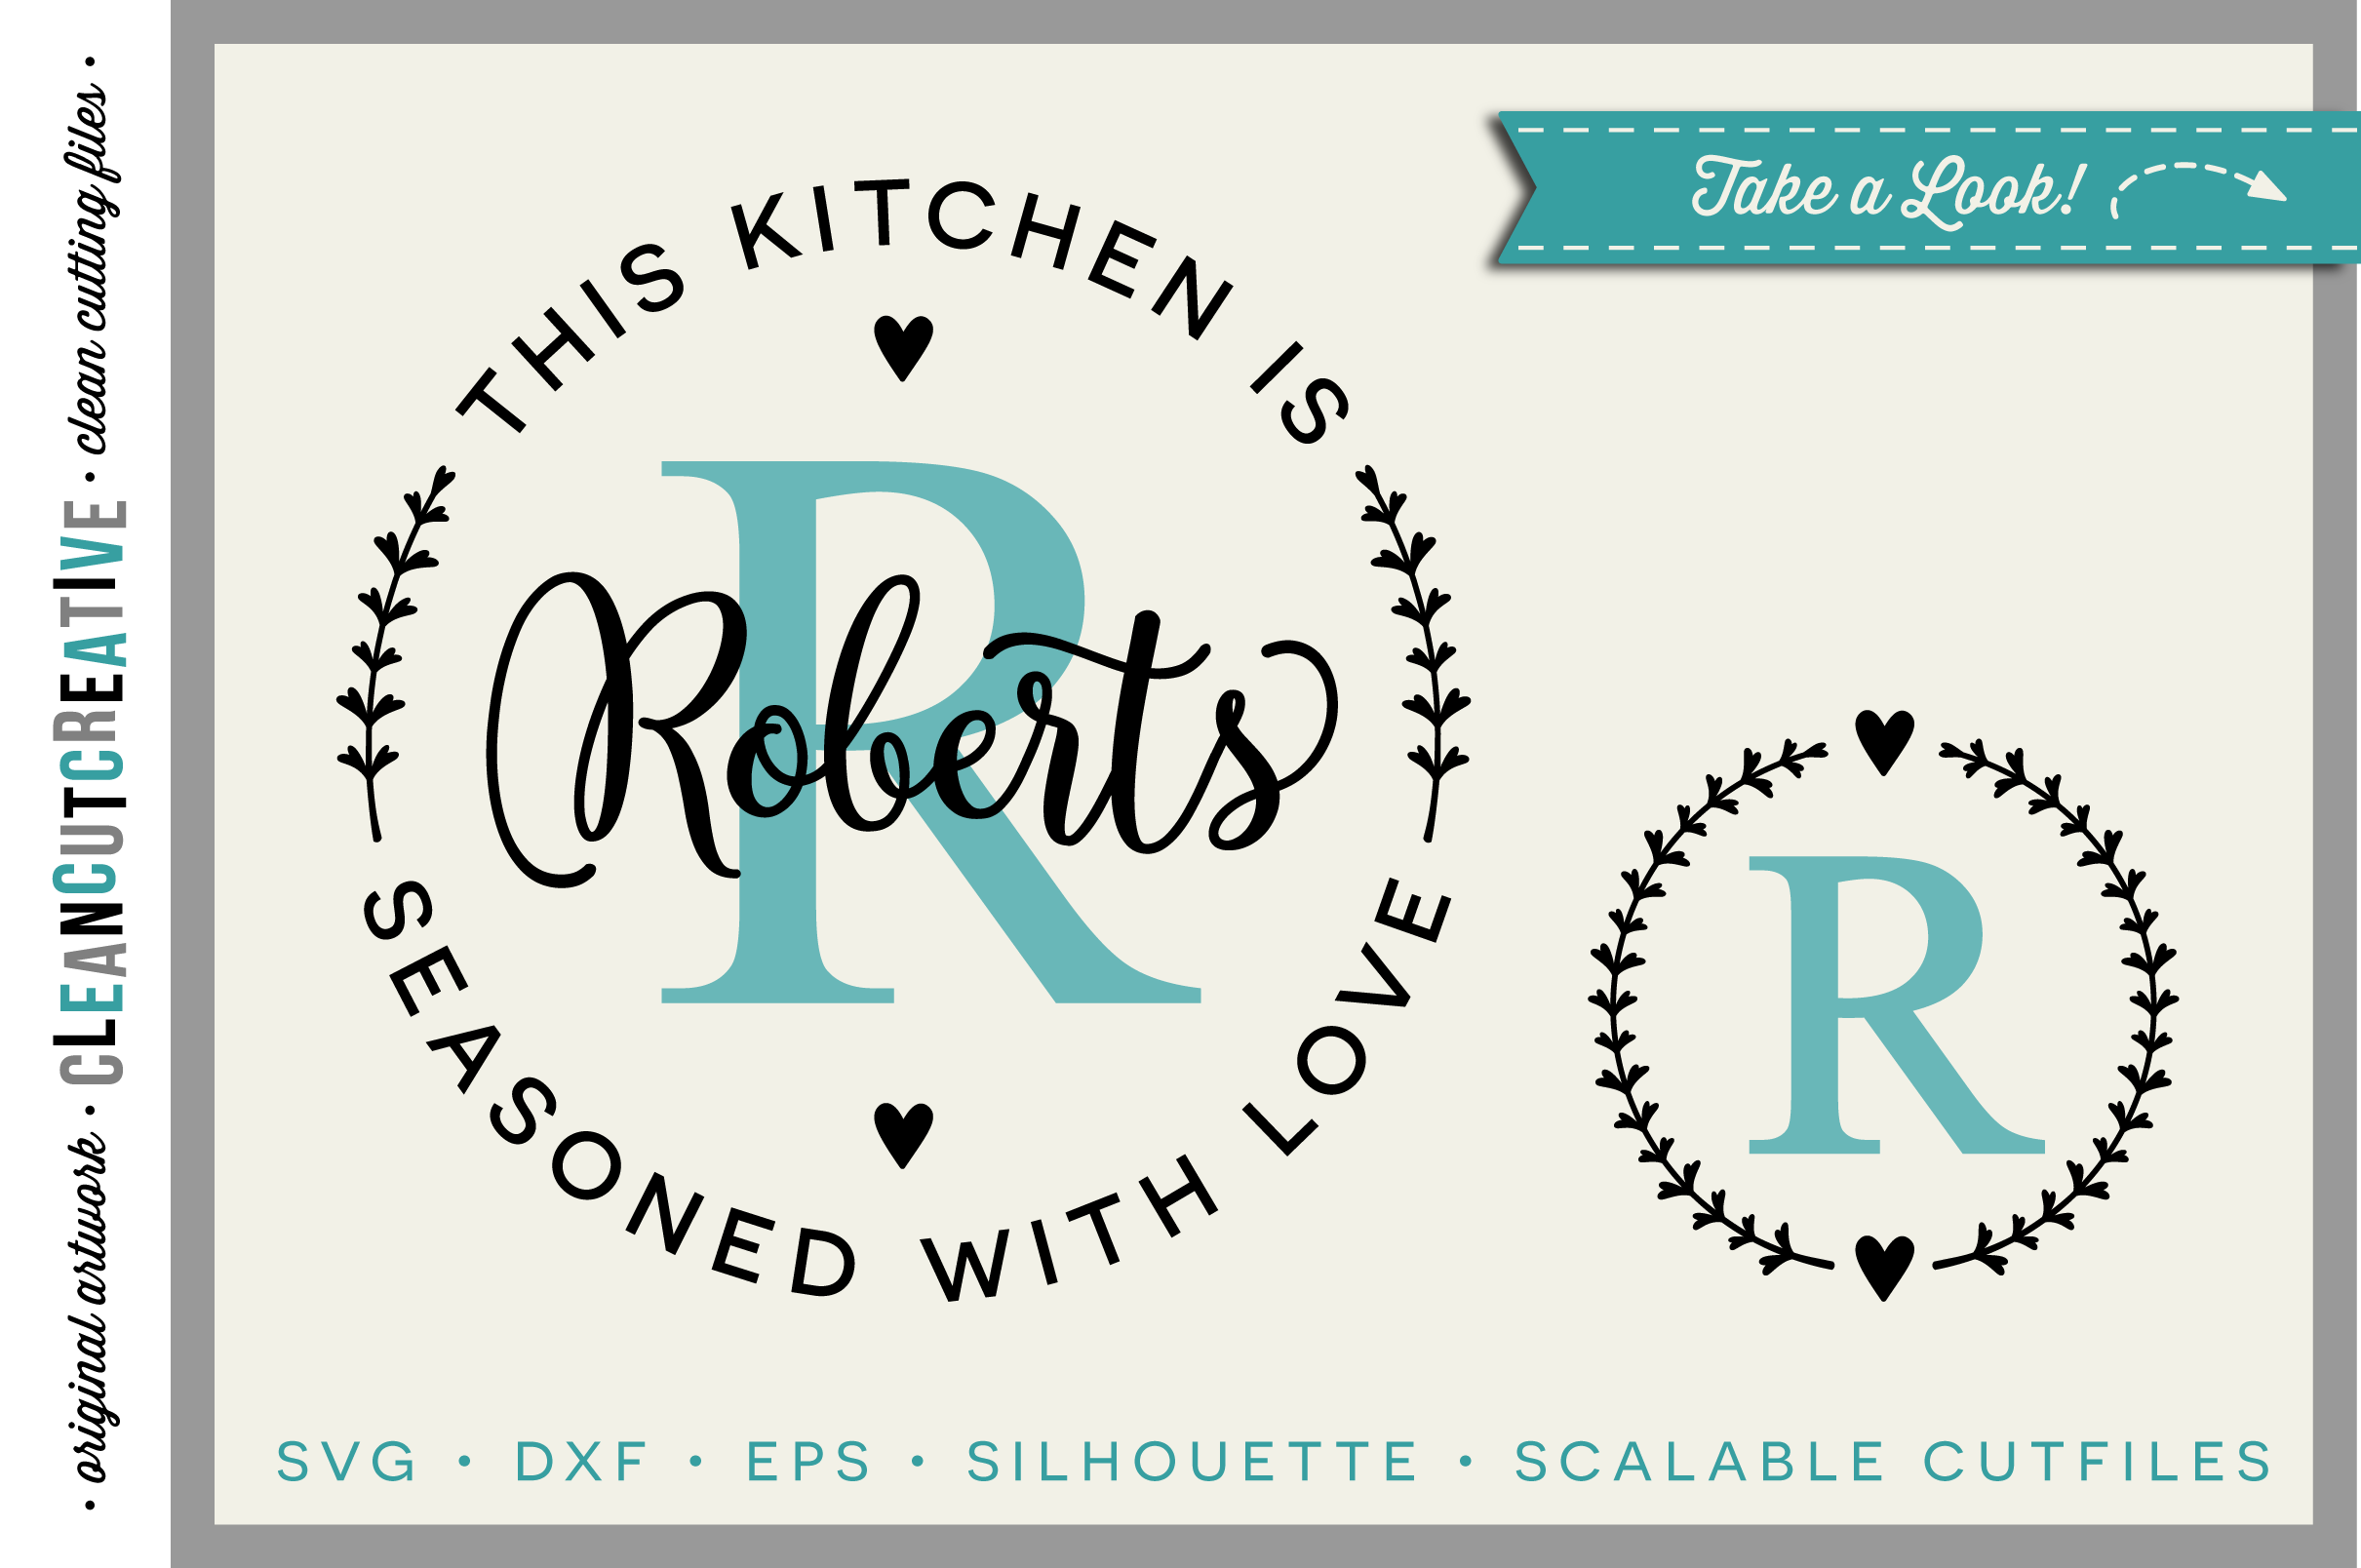 DIY personalize SVG Kitchen Seasoned with Love monogram frame- SVG DXF EPSPNG - Cricut & Silhouette - clean cutting files example image 1